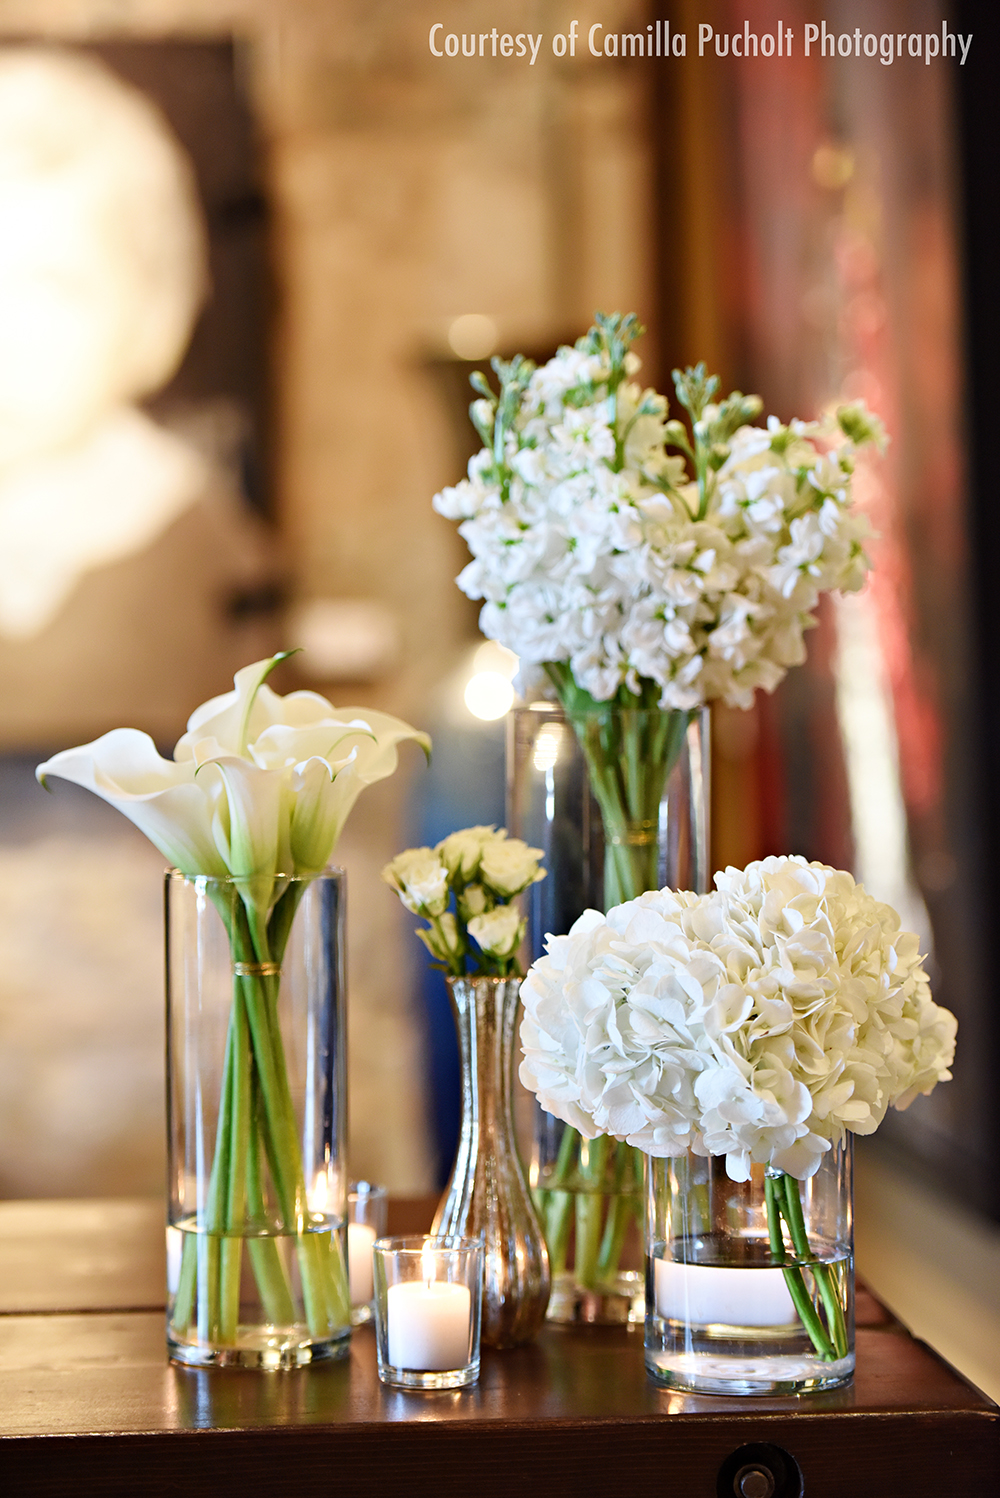 Top 3 wedding trends for 2016 bouquet of flowers centerpieces for weddings junglespirit Gallery